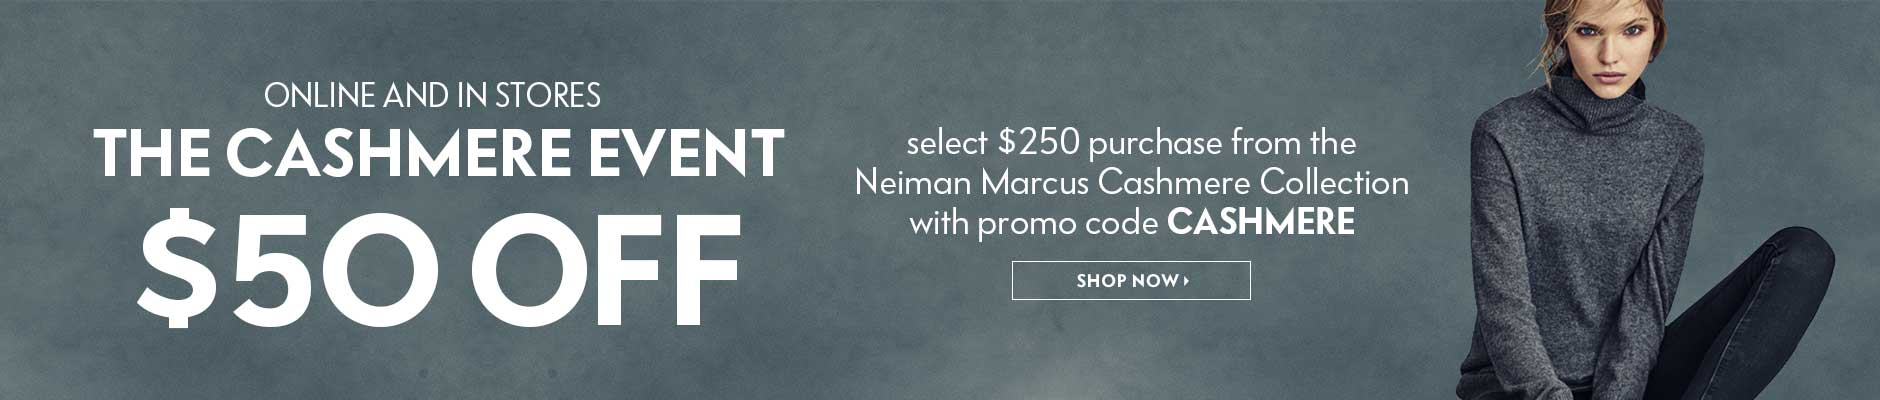 Cashmere Event: $50 off select $250 purchase from Neiman Marcus Cashmere Collection